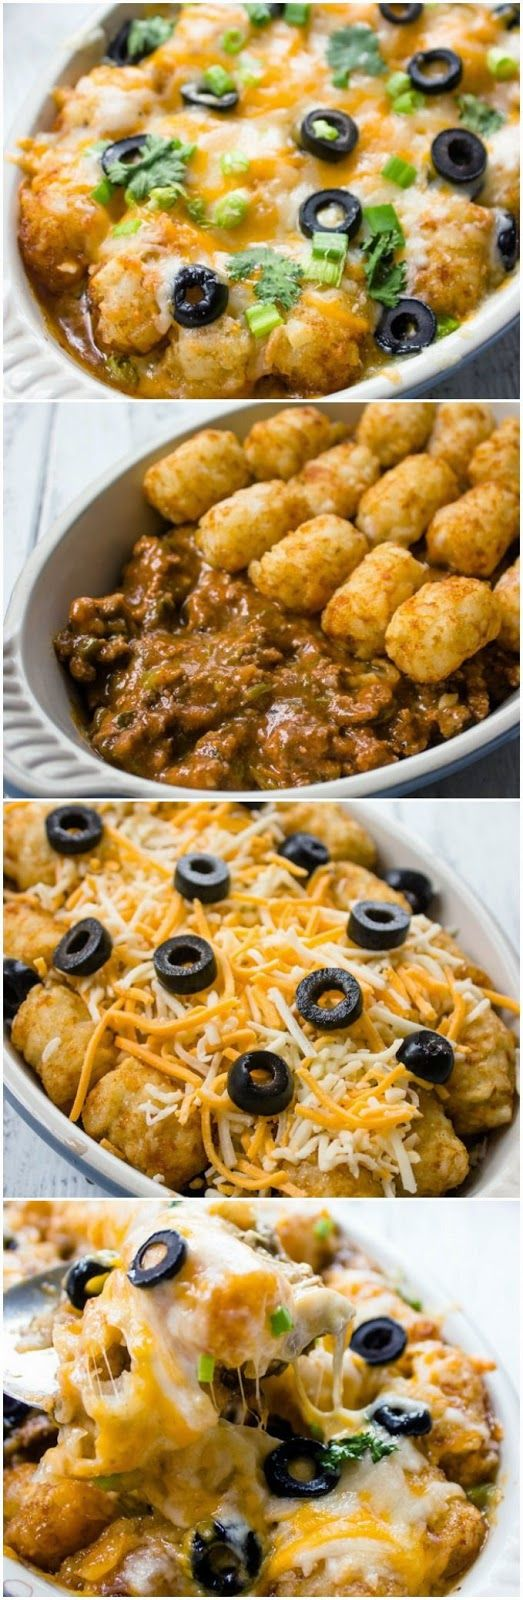 Tater Tot Enchilada Bake-would use soyrizo or veggie crumbles instead of ground beef